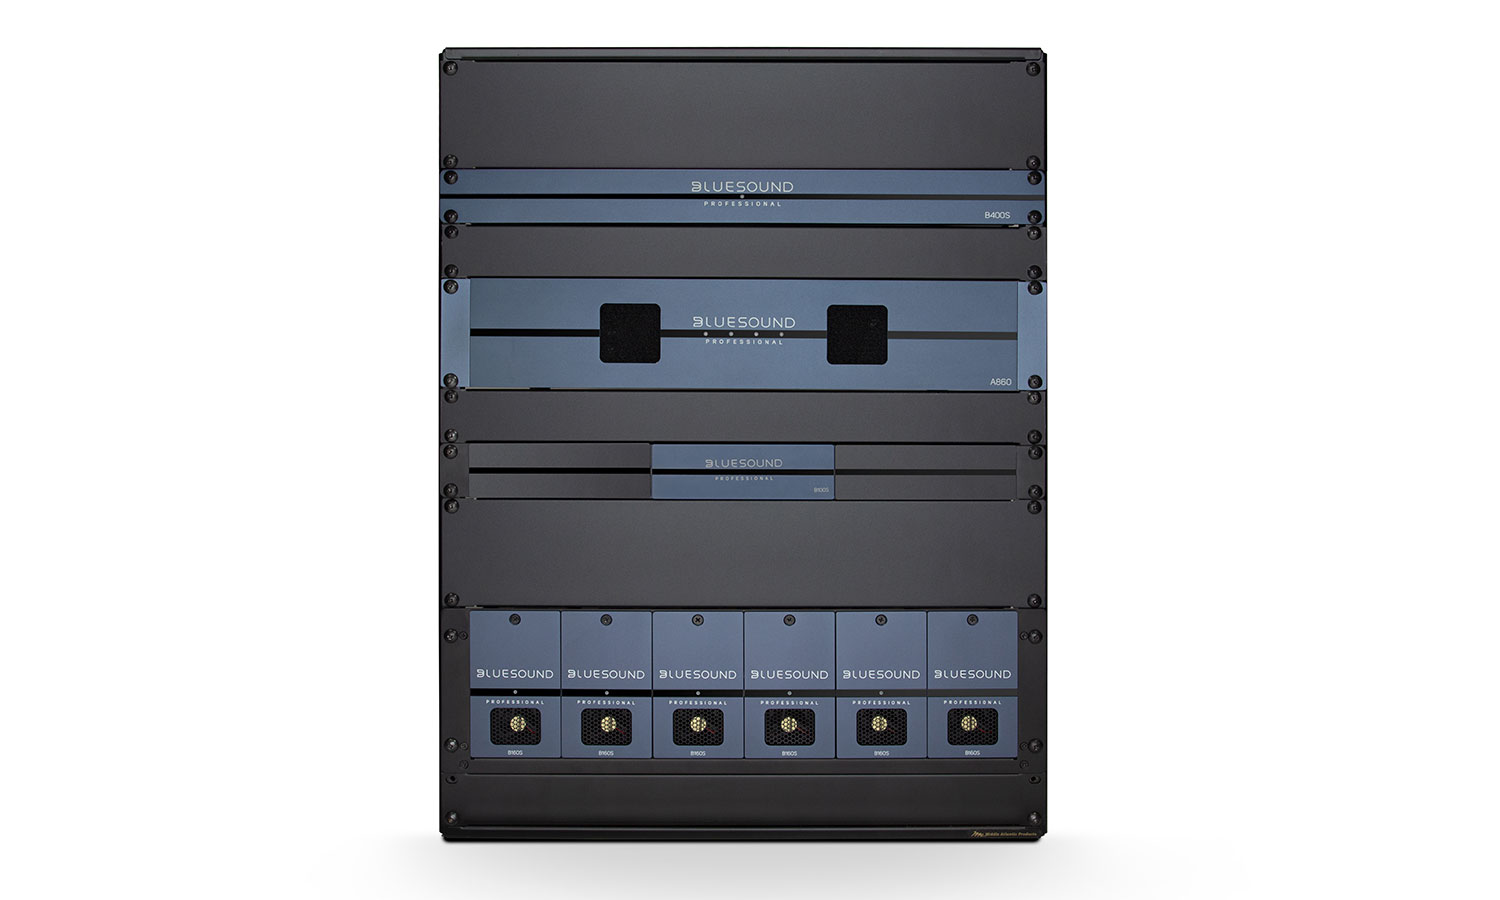 rack mounted streaming players